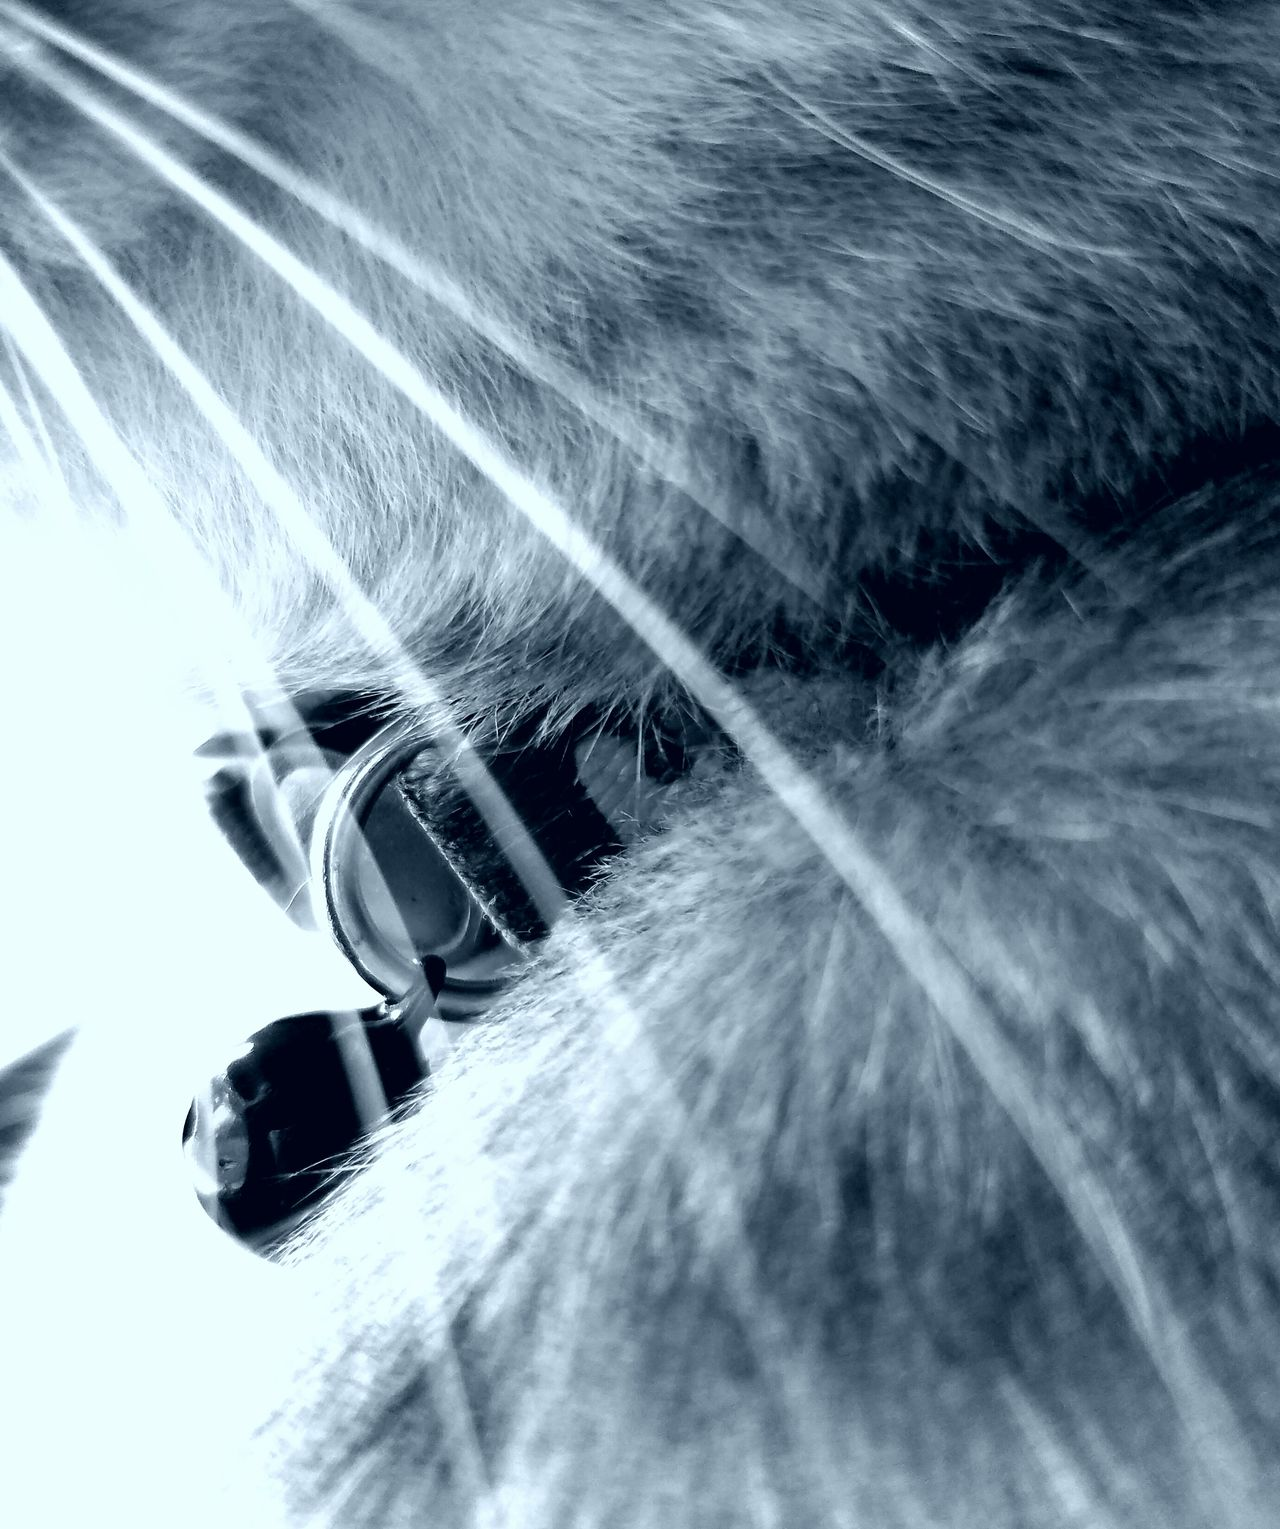 WHISKERS Whiskers The Song Of Light MUR B&W Cats Portrait Extreme Close Up Animal Hair Feline Domestic Animals Pets Domestic Cat Beauty In Nature Fluffy Love Furry Love